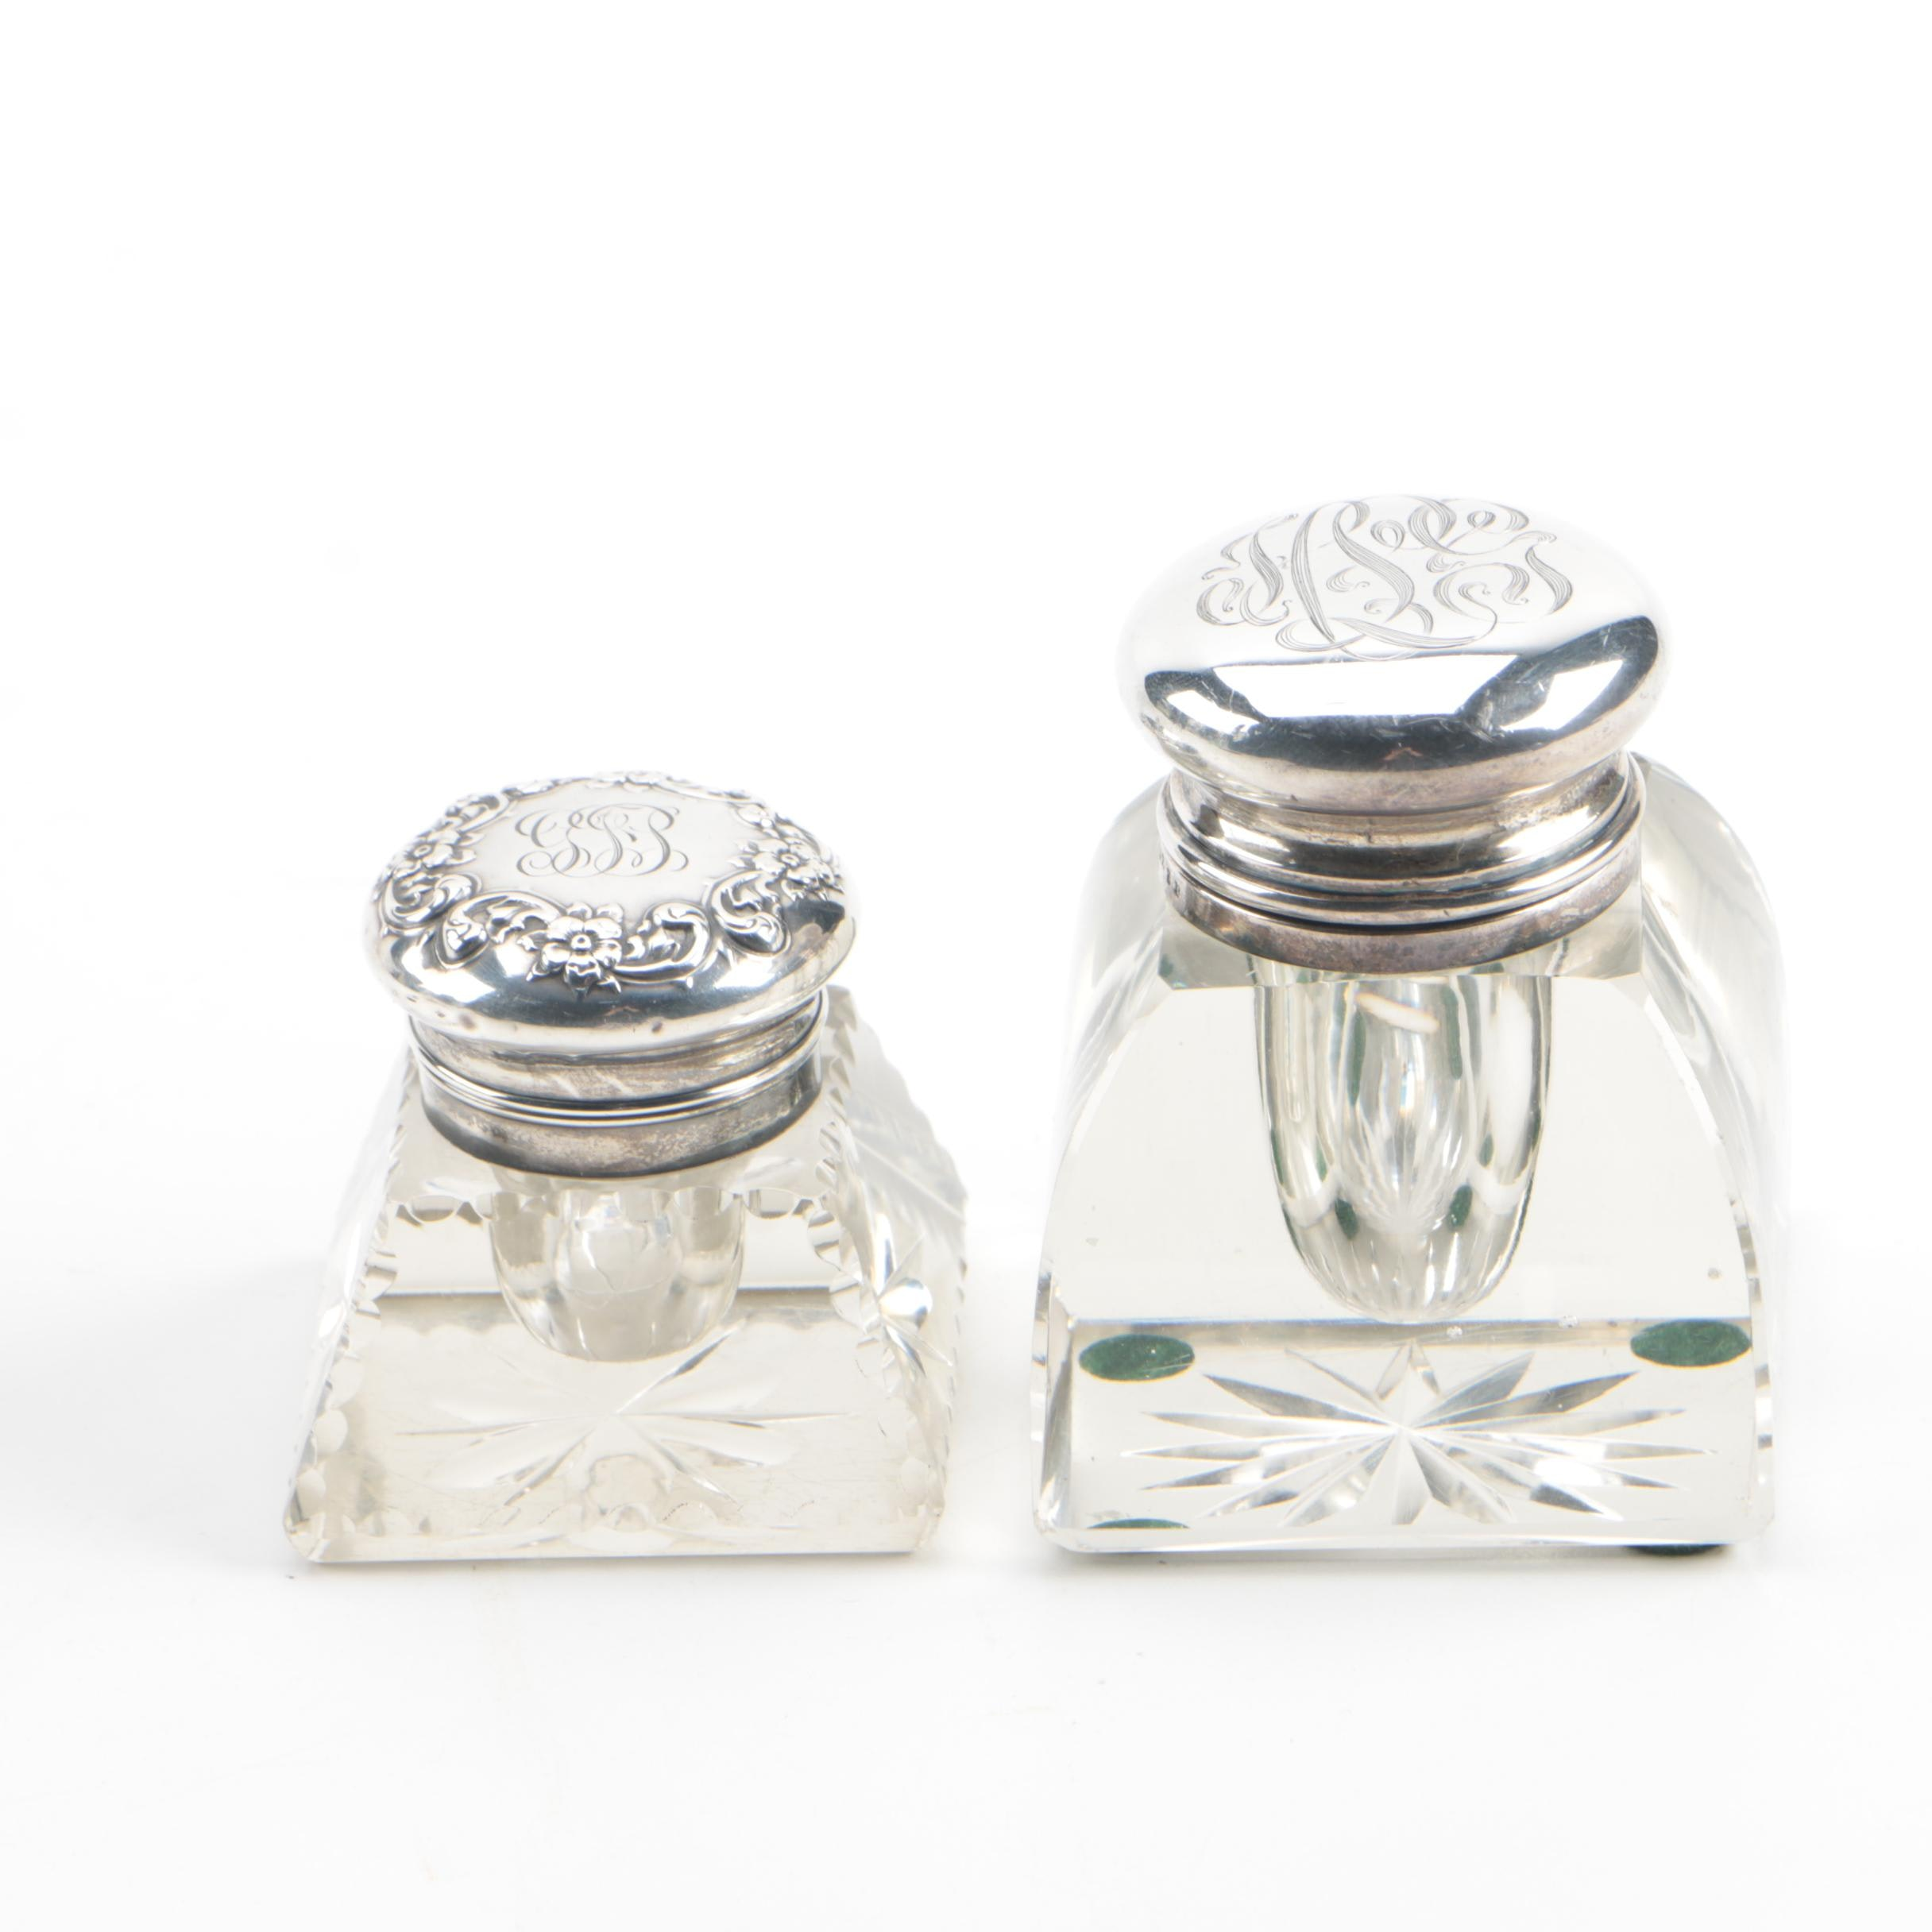 Vintage Sterling Silver and Glass Inkwells featuring Simon Brothers